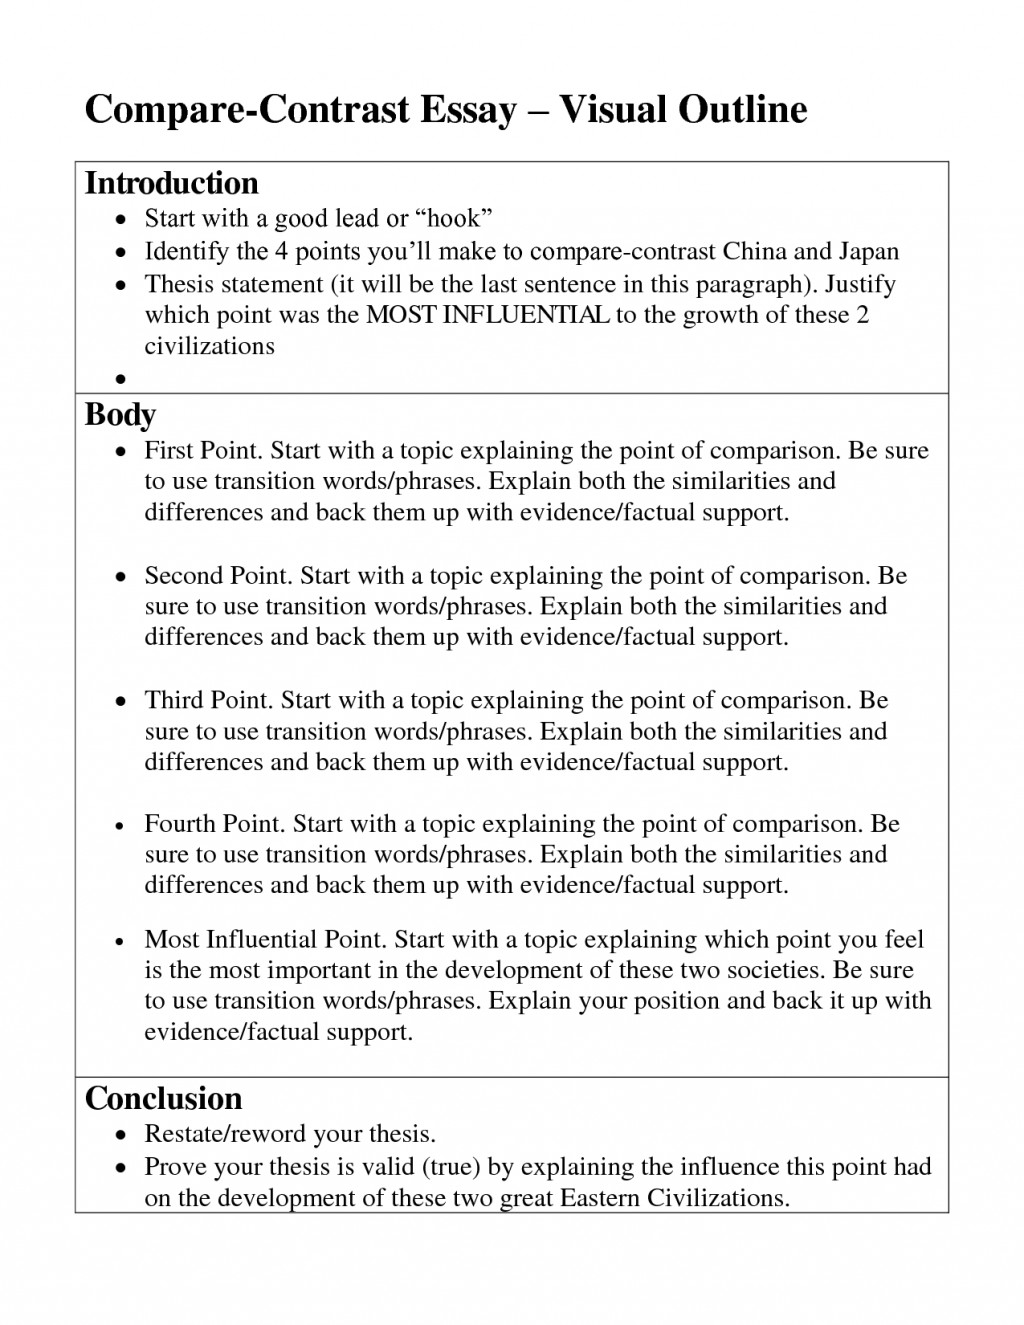 004 Compare Contrast Essay Outline Impressive And Worksheet Pdf Format 5 Paragraph Point By Large